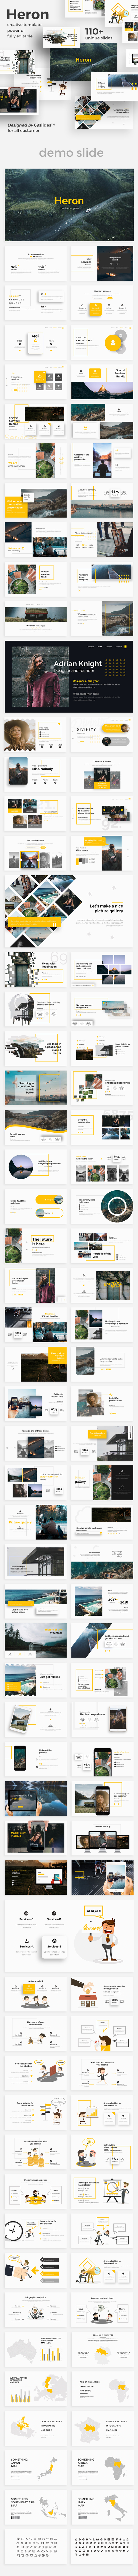 Heron Creative Google Slide Template - Google Slides Presentation Templates